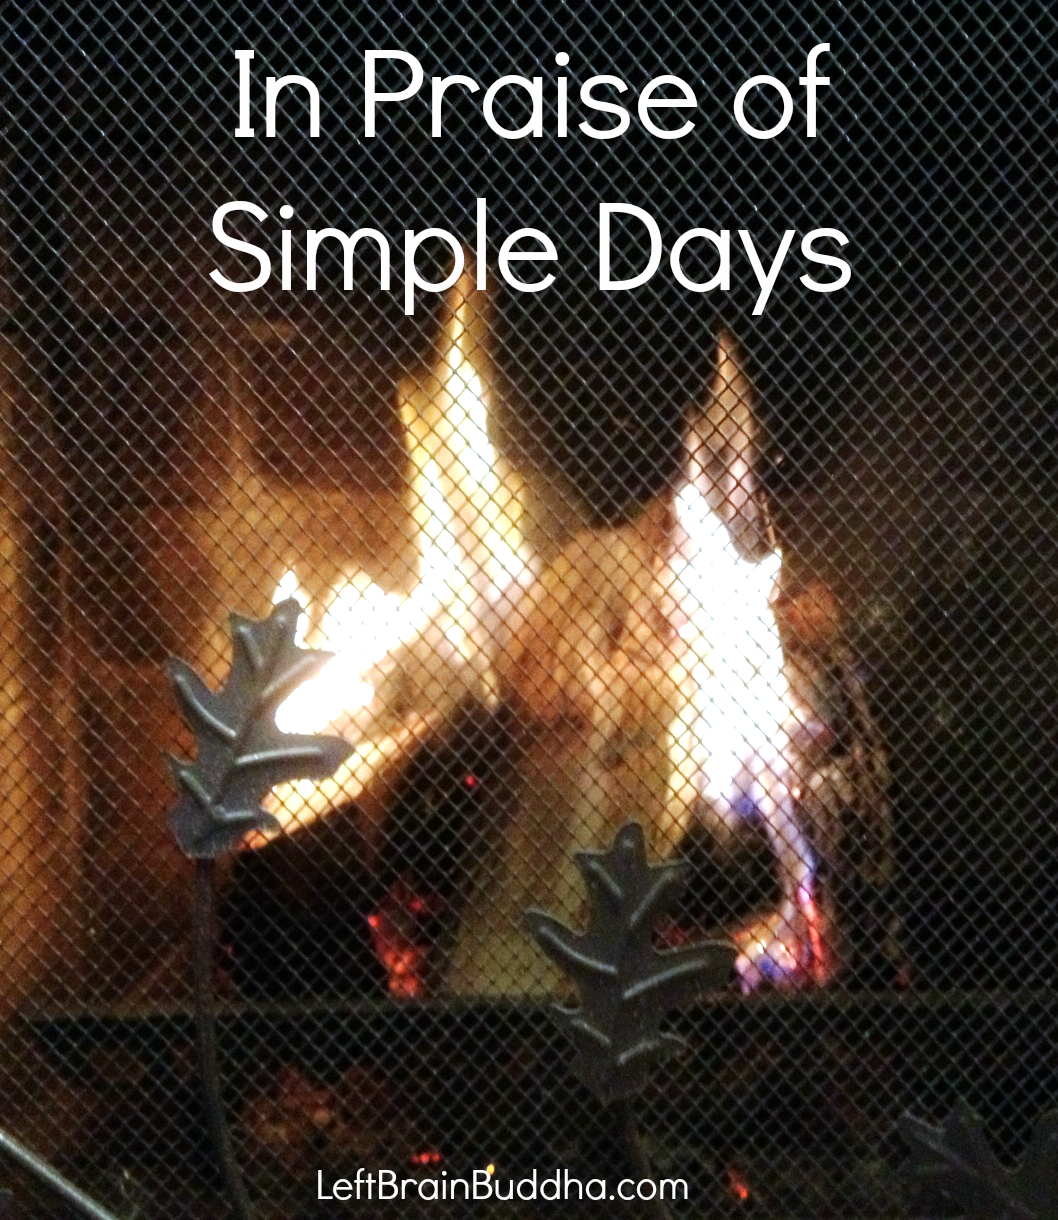 In Praise of Simple Days